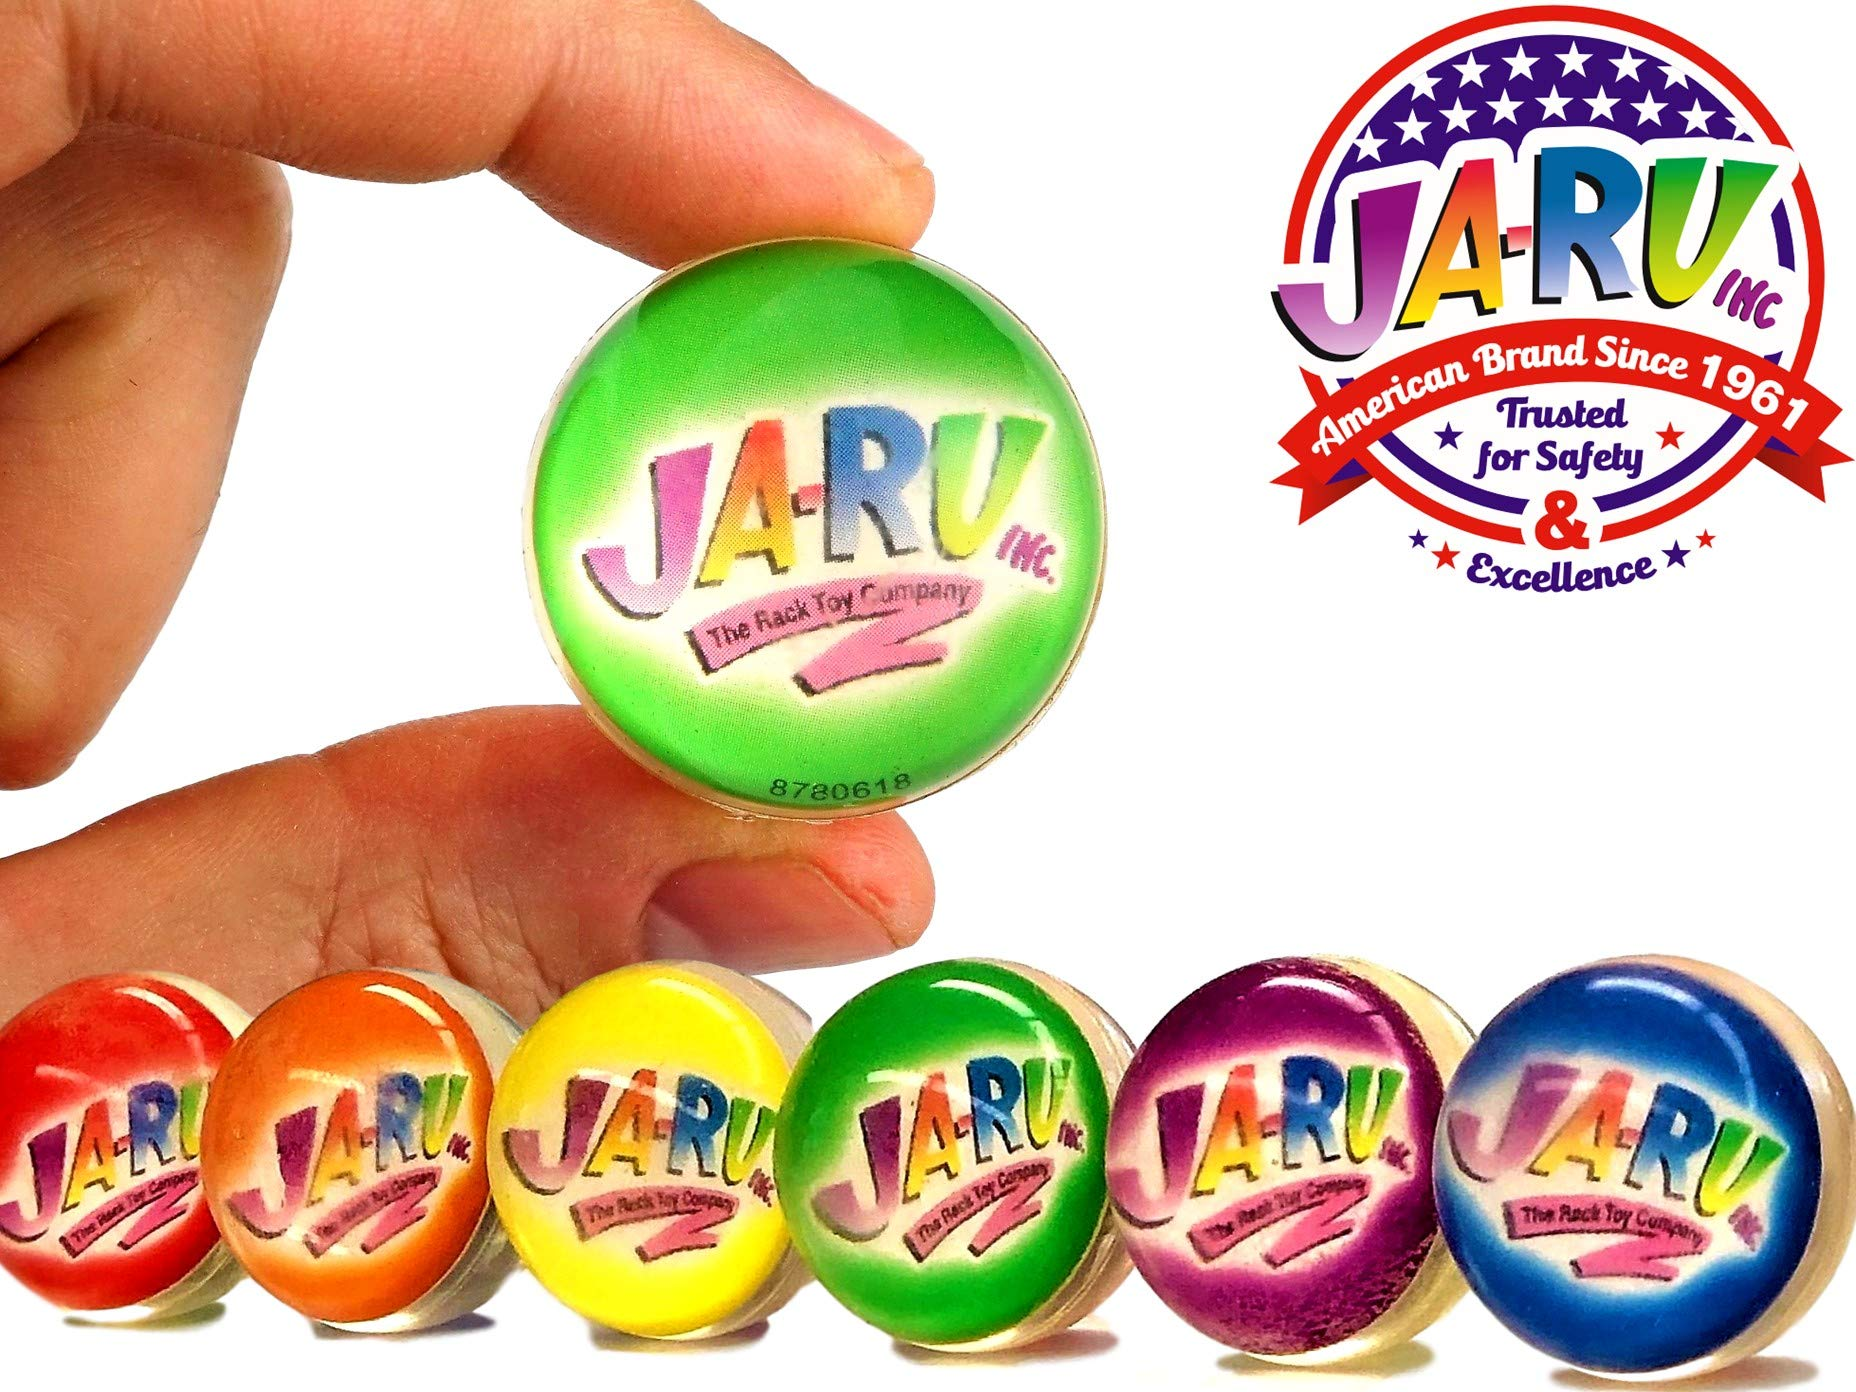 JA-RU Light Up Bead Ball Squeezing Stress Relief Ball (Pack of 72 Units) and One Bouncy Ball - for Kids & Adults Item #4205-72 by JA-RU (Image #1)